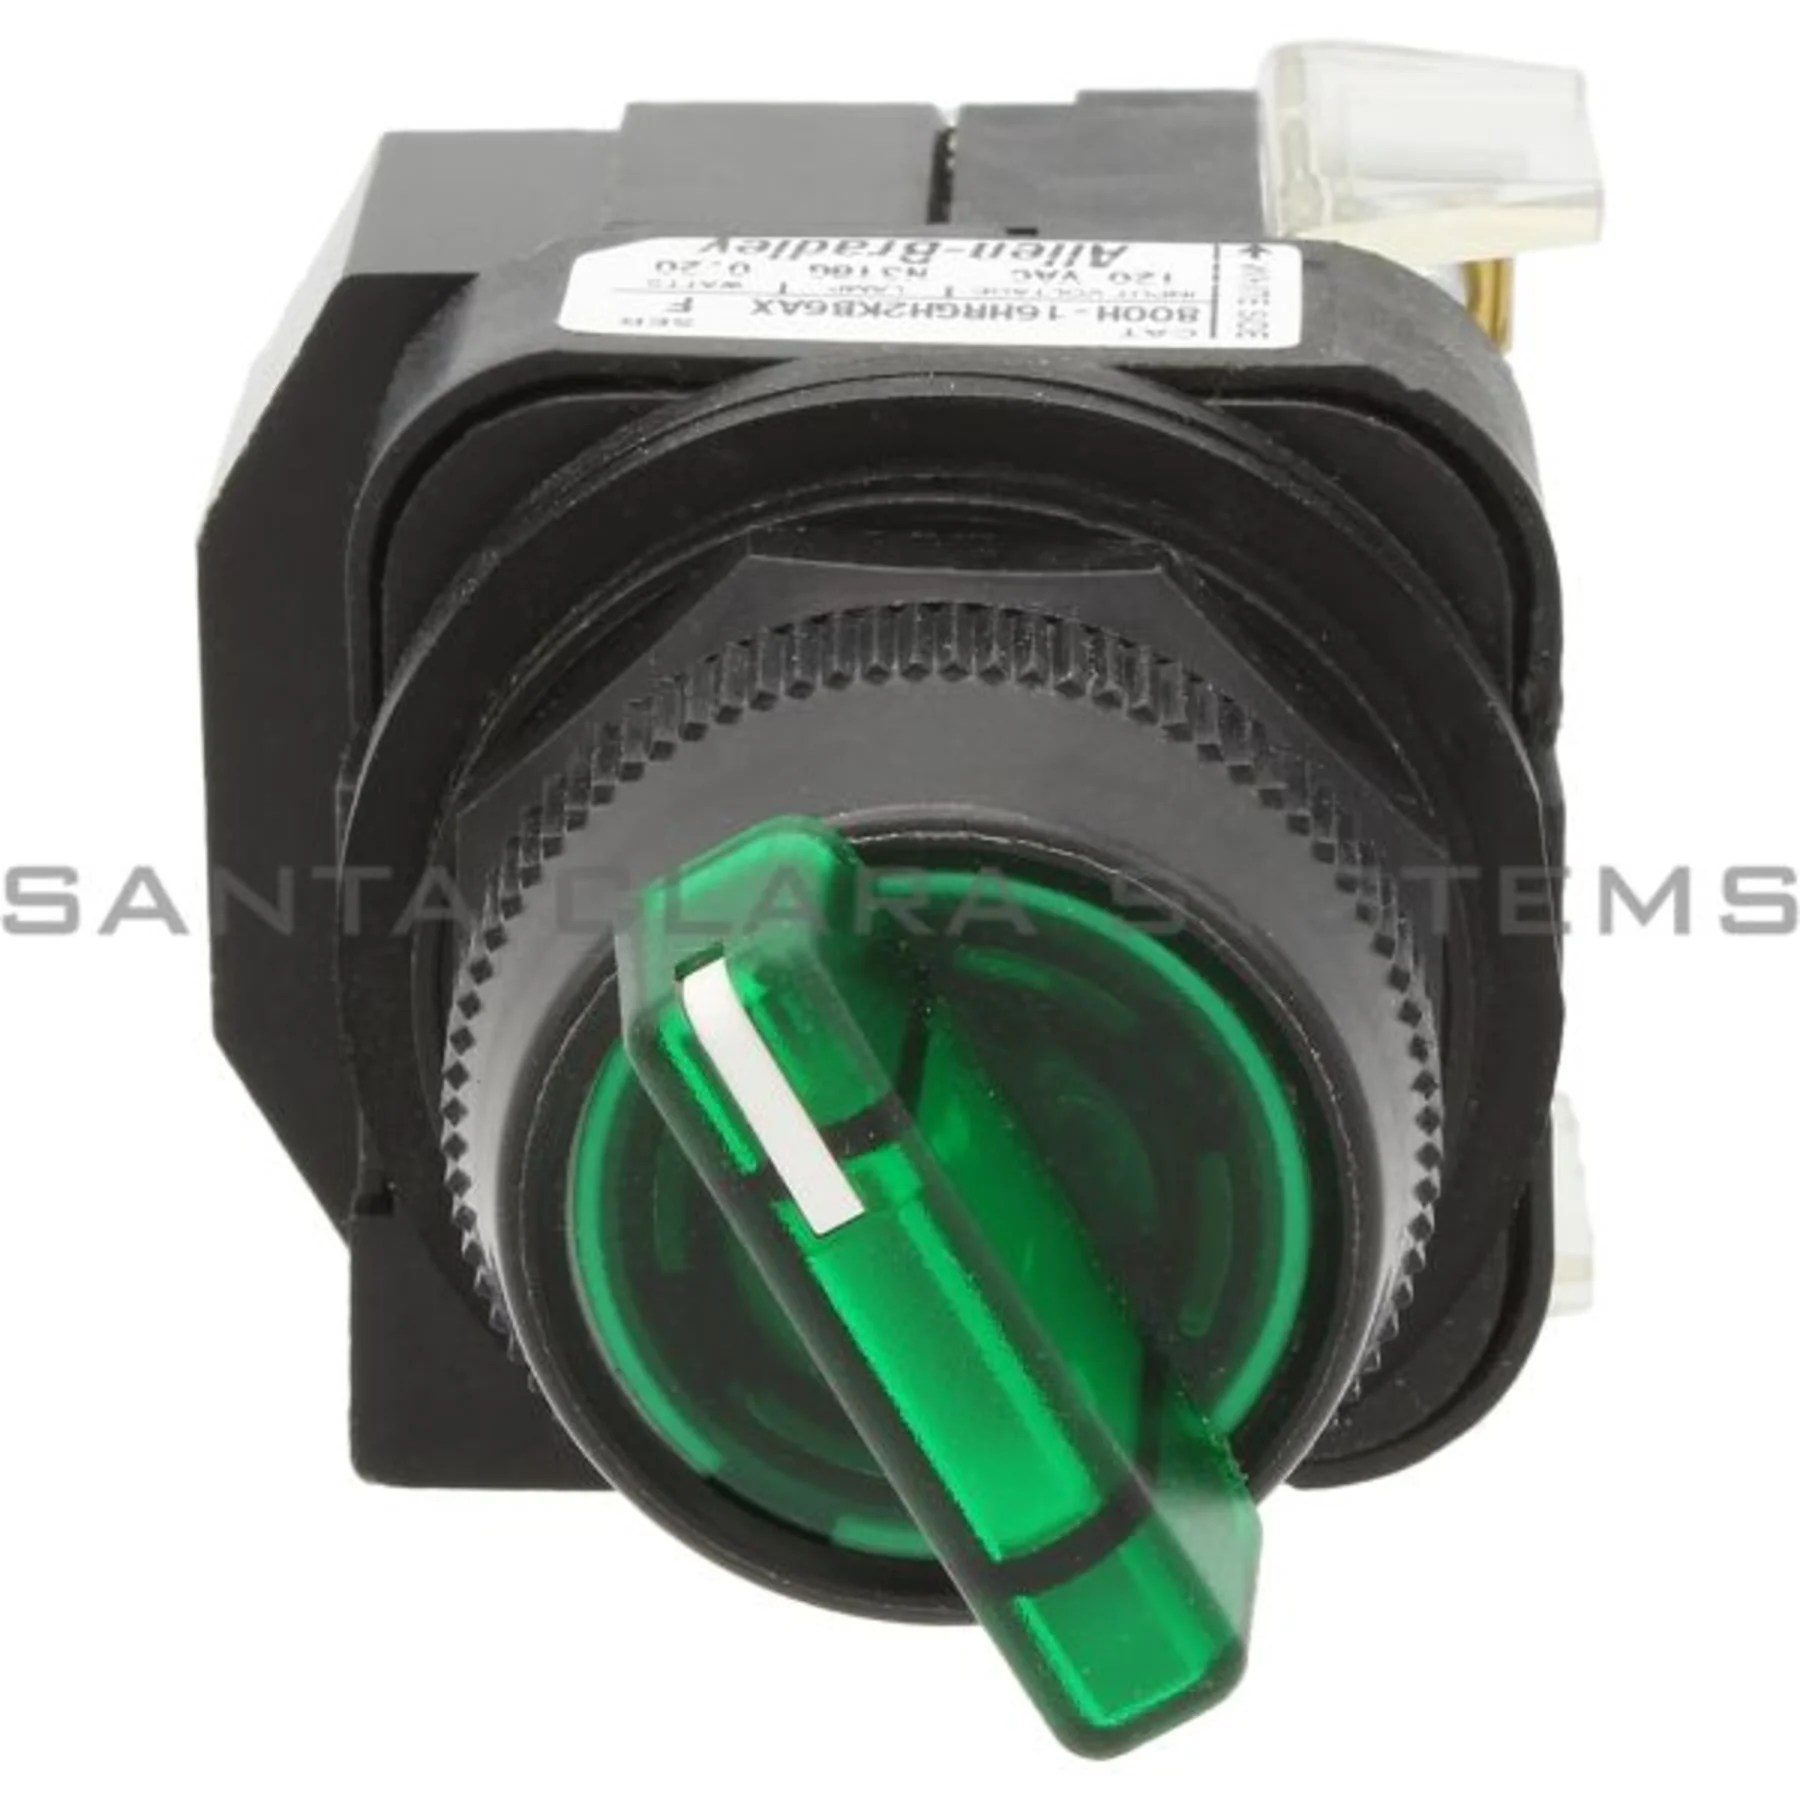 hight resolution of allen bradley 800h 16hrgh2kb6ax pushbutton switch product image